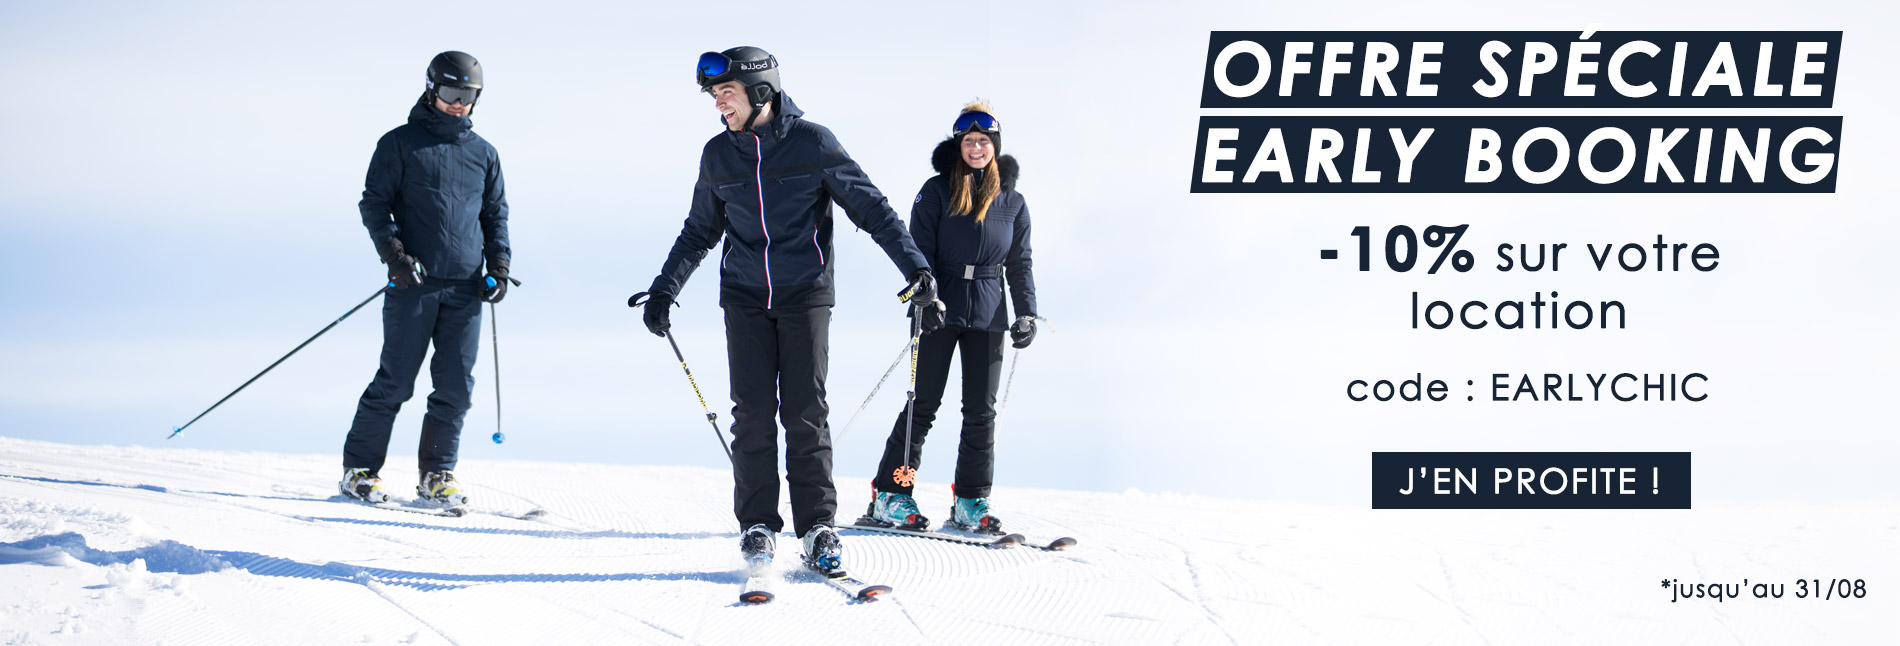 Offre early booking ski